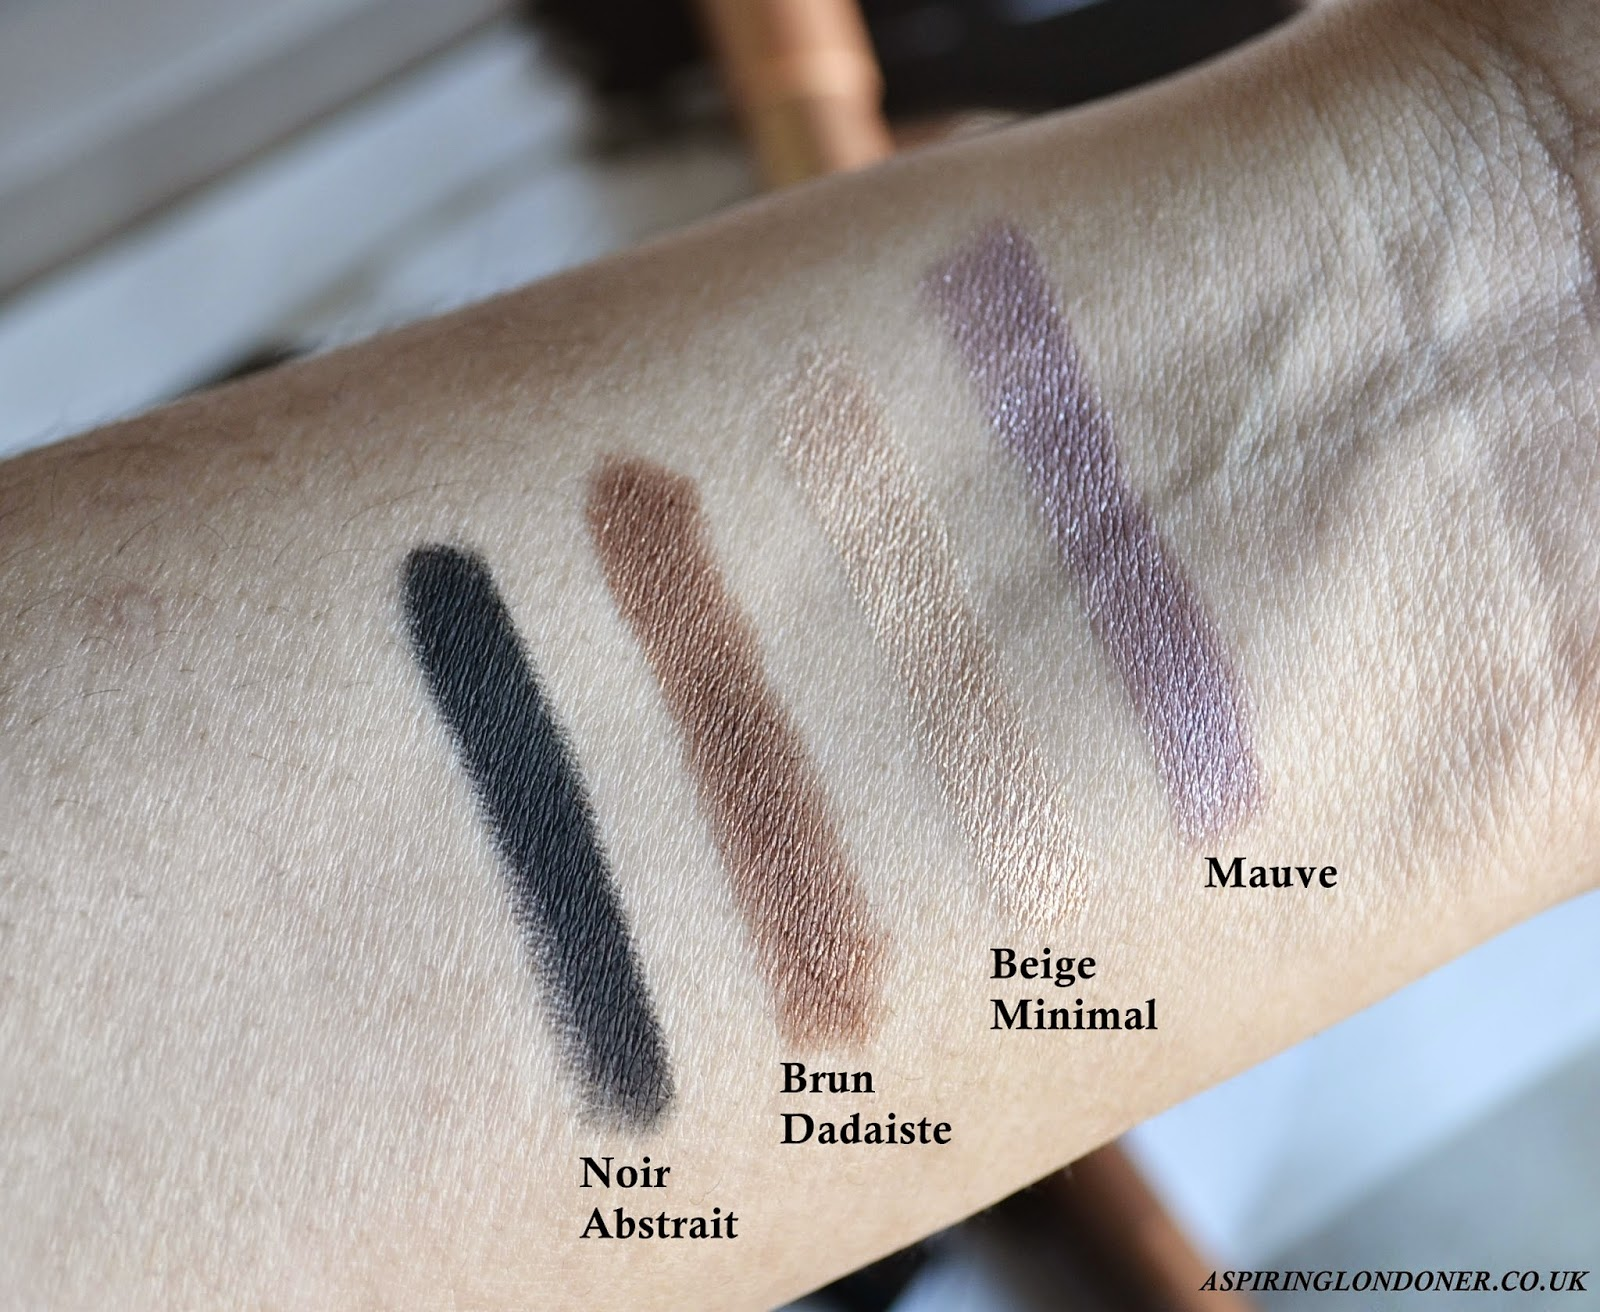 Bourjois Colorband 2-in-1 Eyeshadow & Liner Swatches - Aspiring Londoner